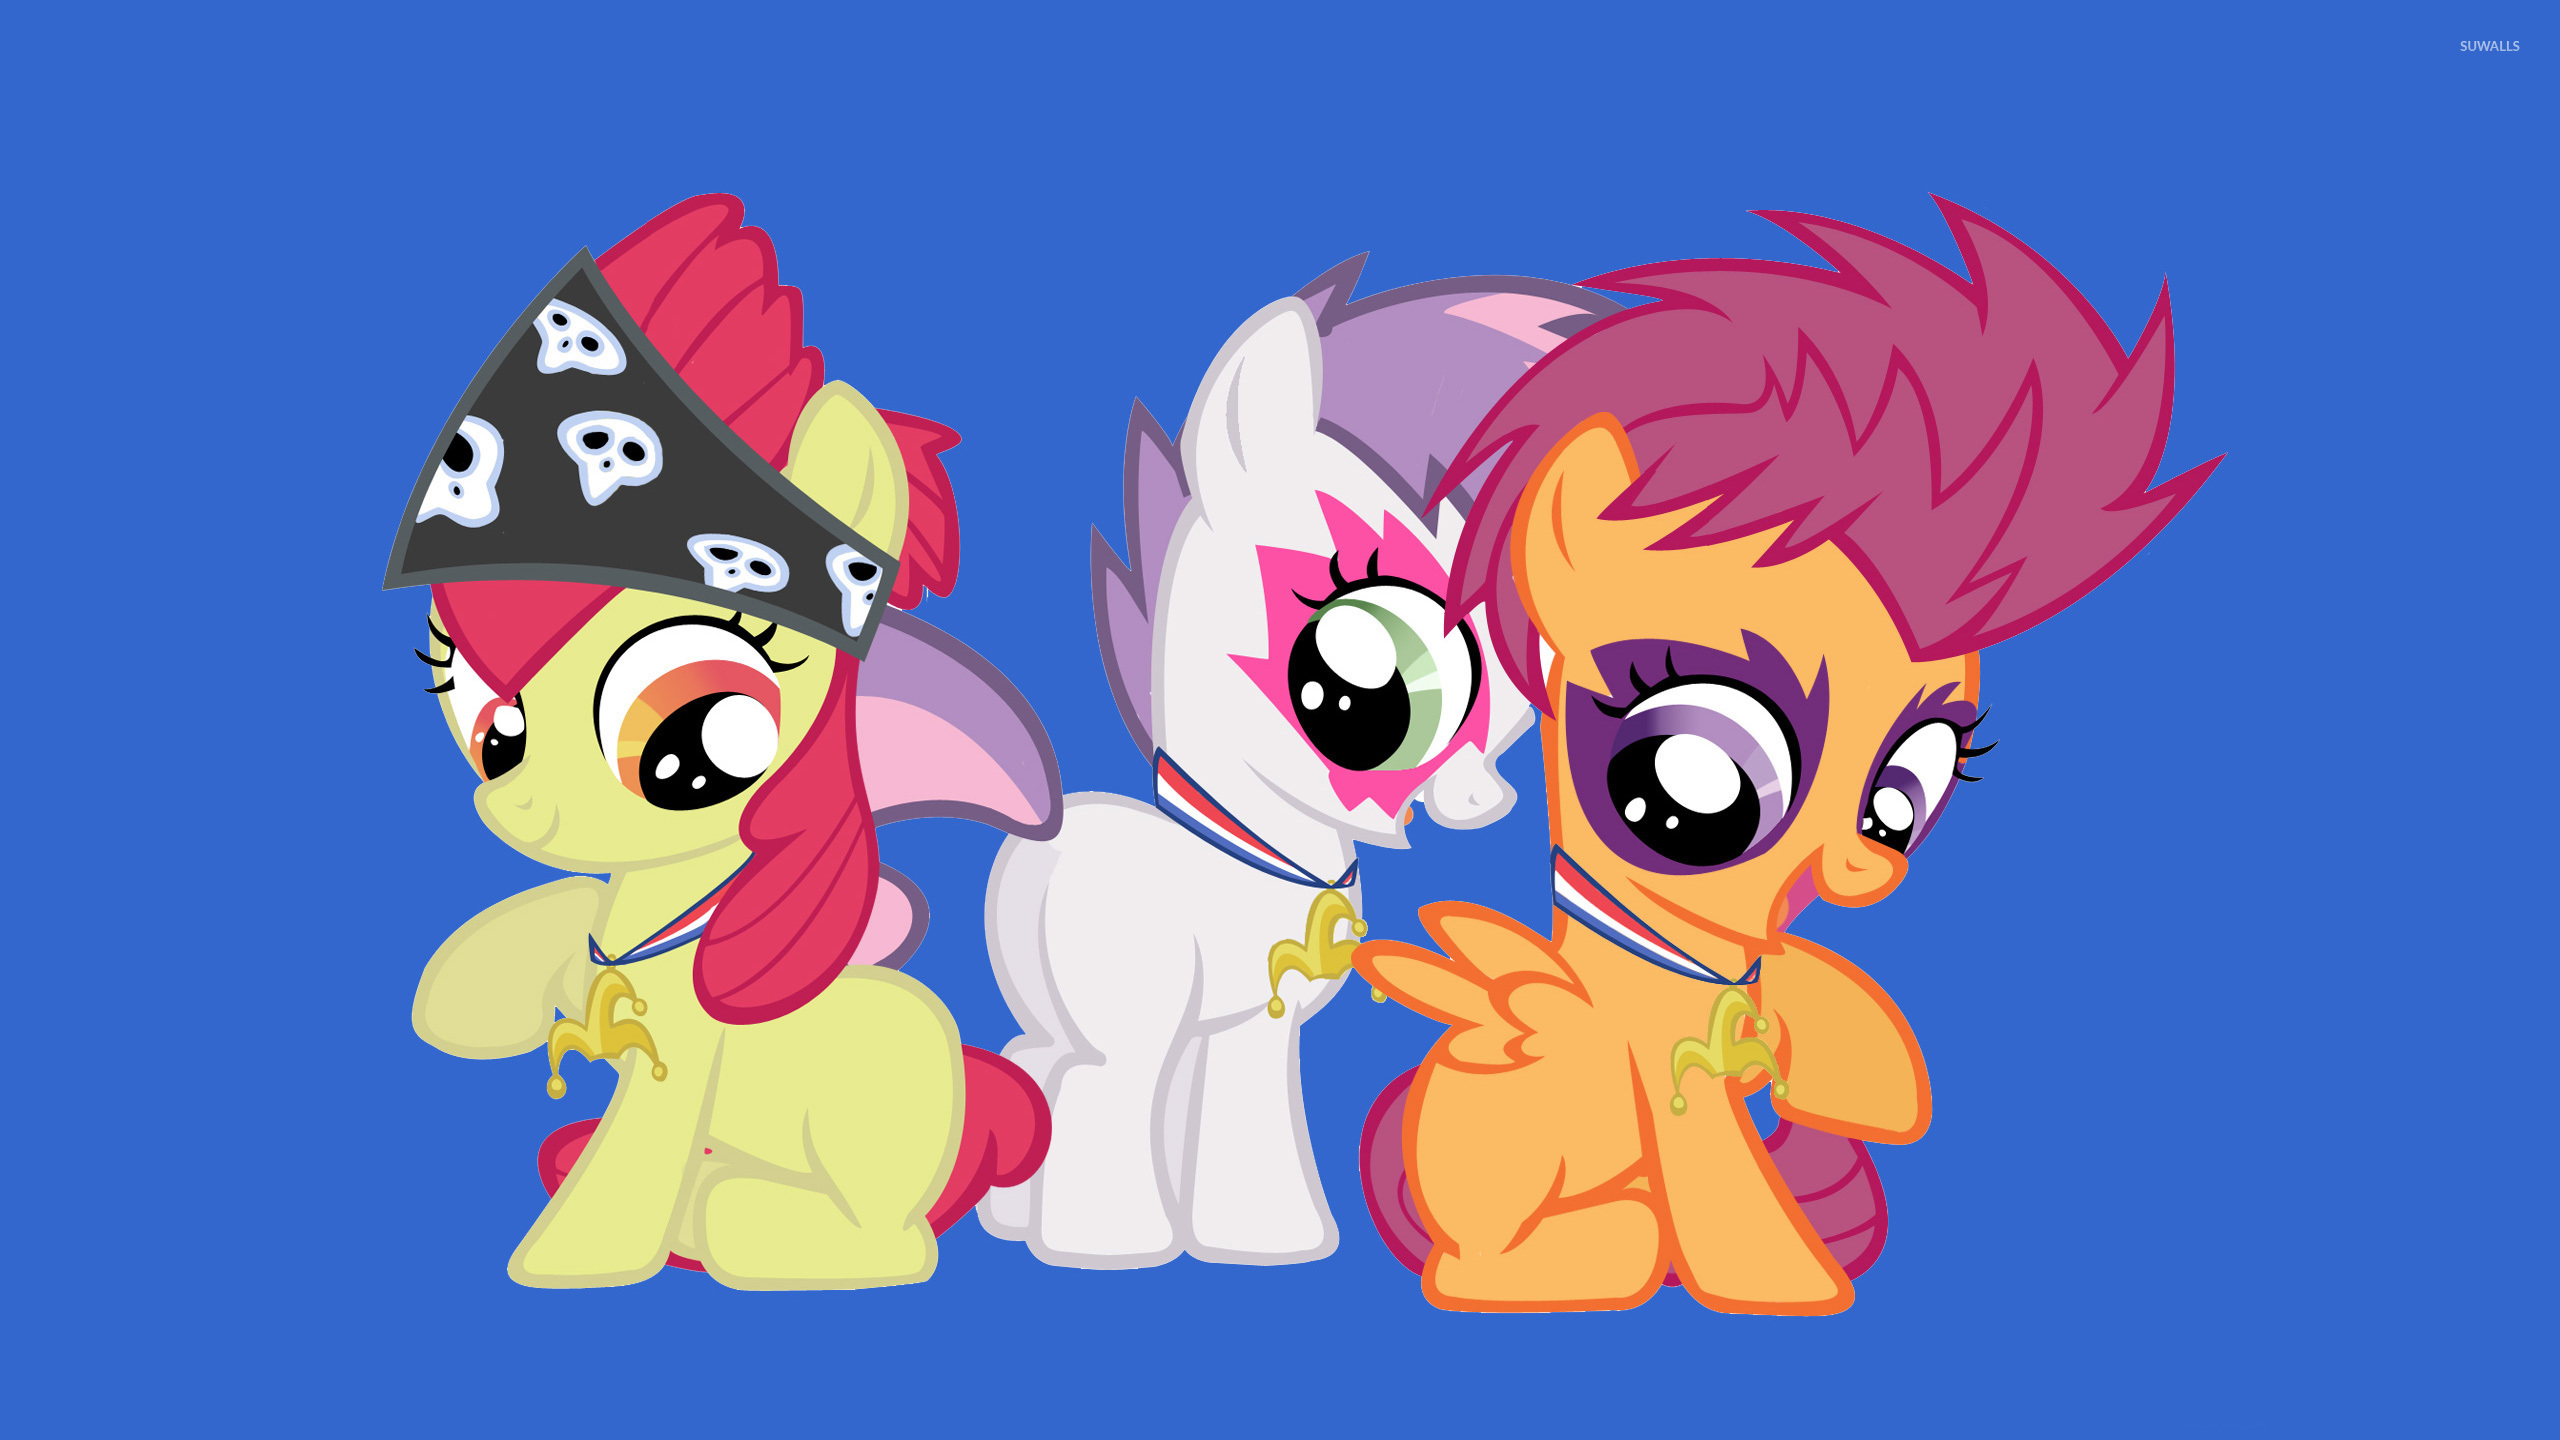 Applebloom Sweetie Belle And Scootaloo Wallpaper Cartoon Wallpapers 7227 :3 version 2 will be out. applebloom sweetie belle and scootaloo